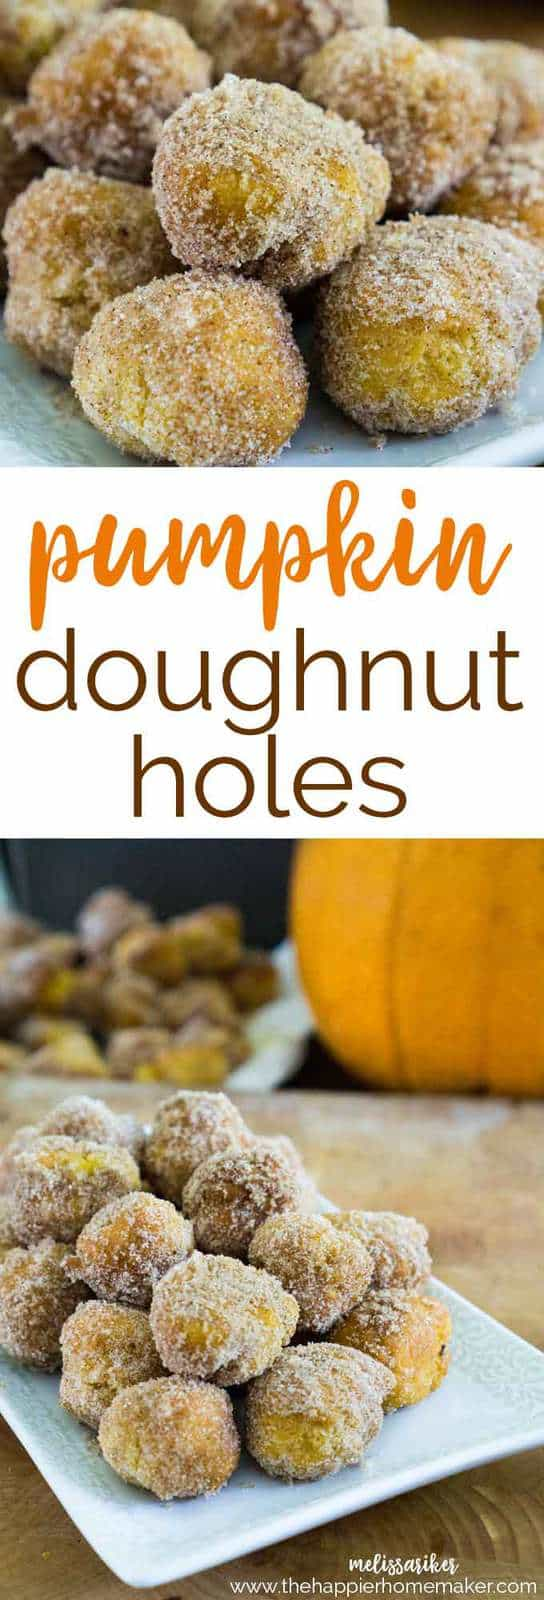 Pumpkin doughnut holes are super easy to make and the perfect fall dessert-ready in less than 30  minutes! No fryer necessary!